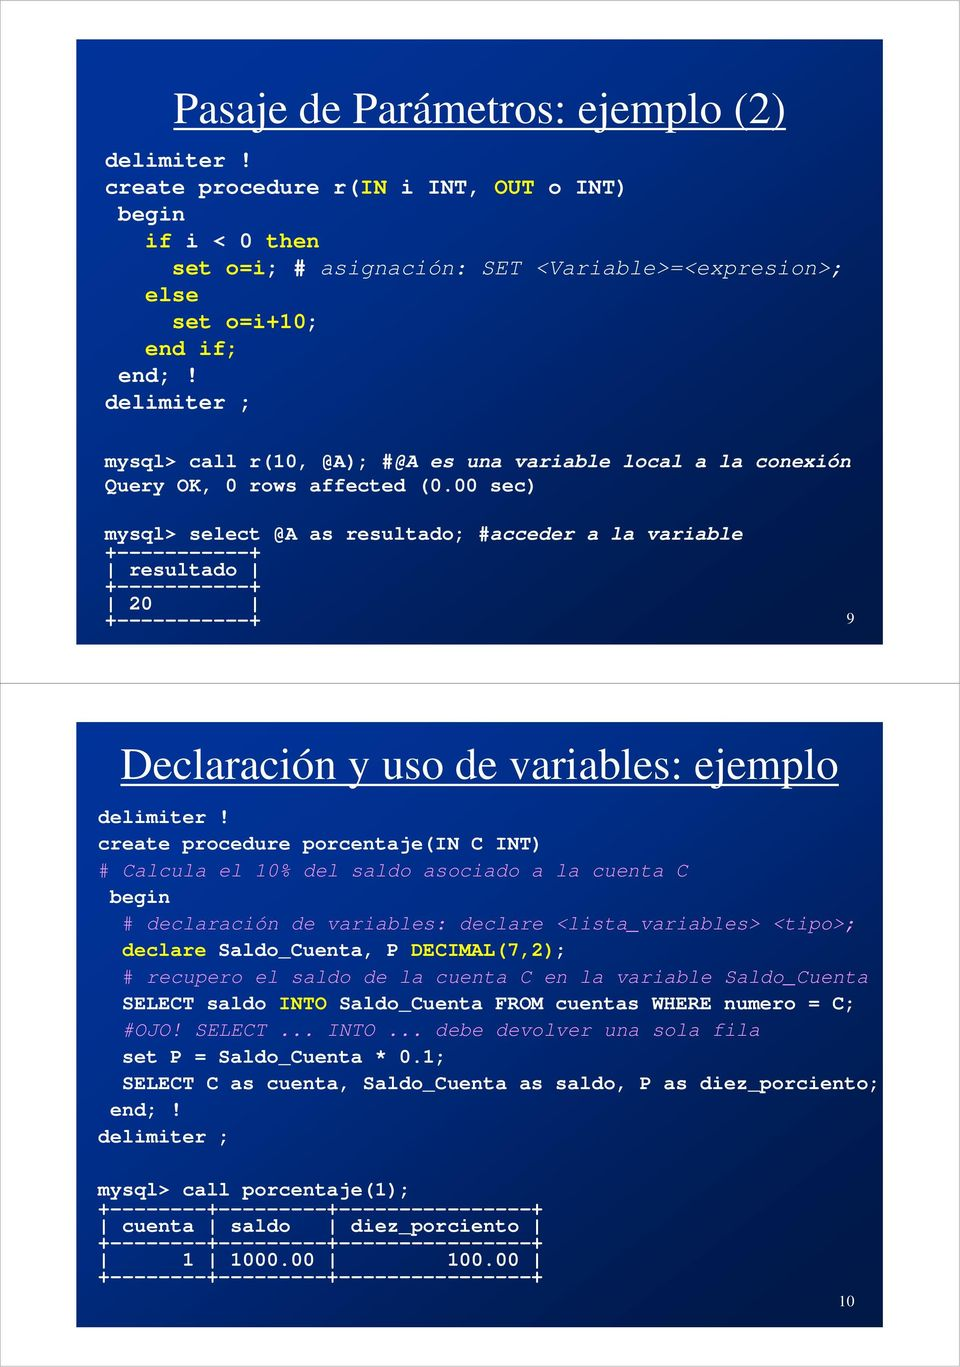 00 sec) mysql> select @A as resultado; #acceder a la variable +-----------+ resultado +-----------+ 20 +-----------+ 9 Declaración y uso de variables: ejemplo delimiter!